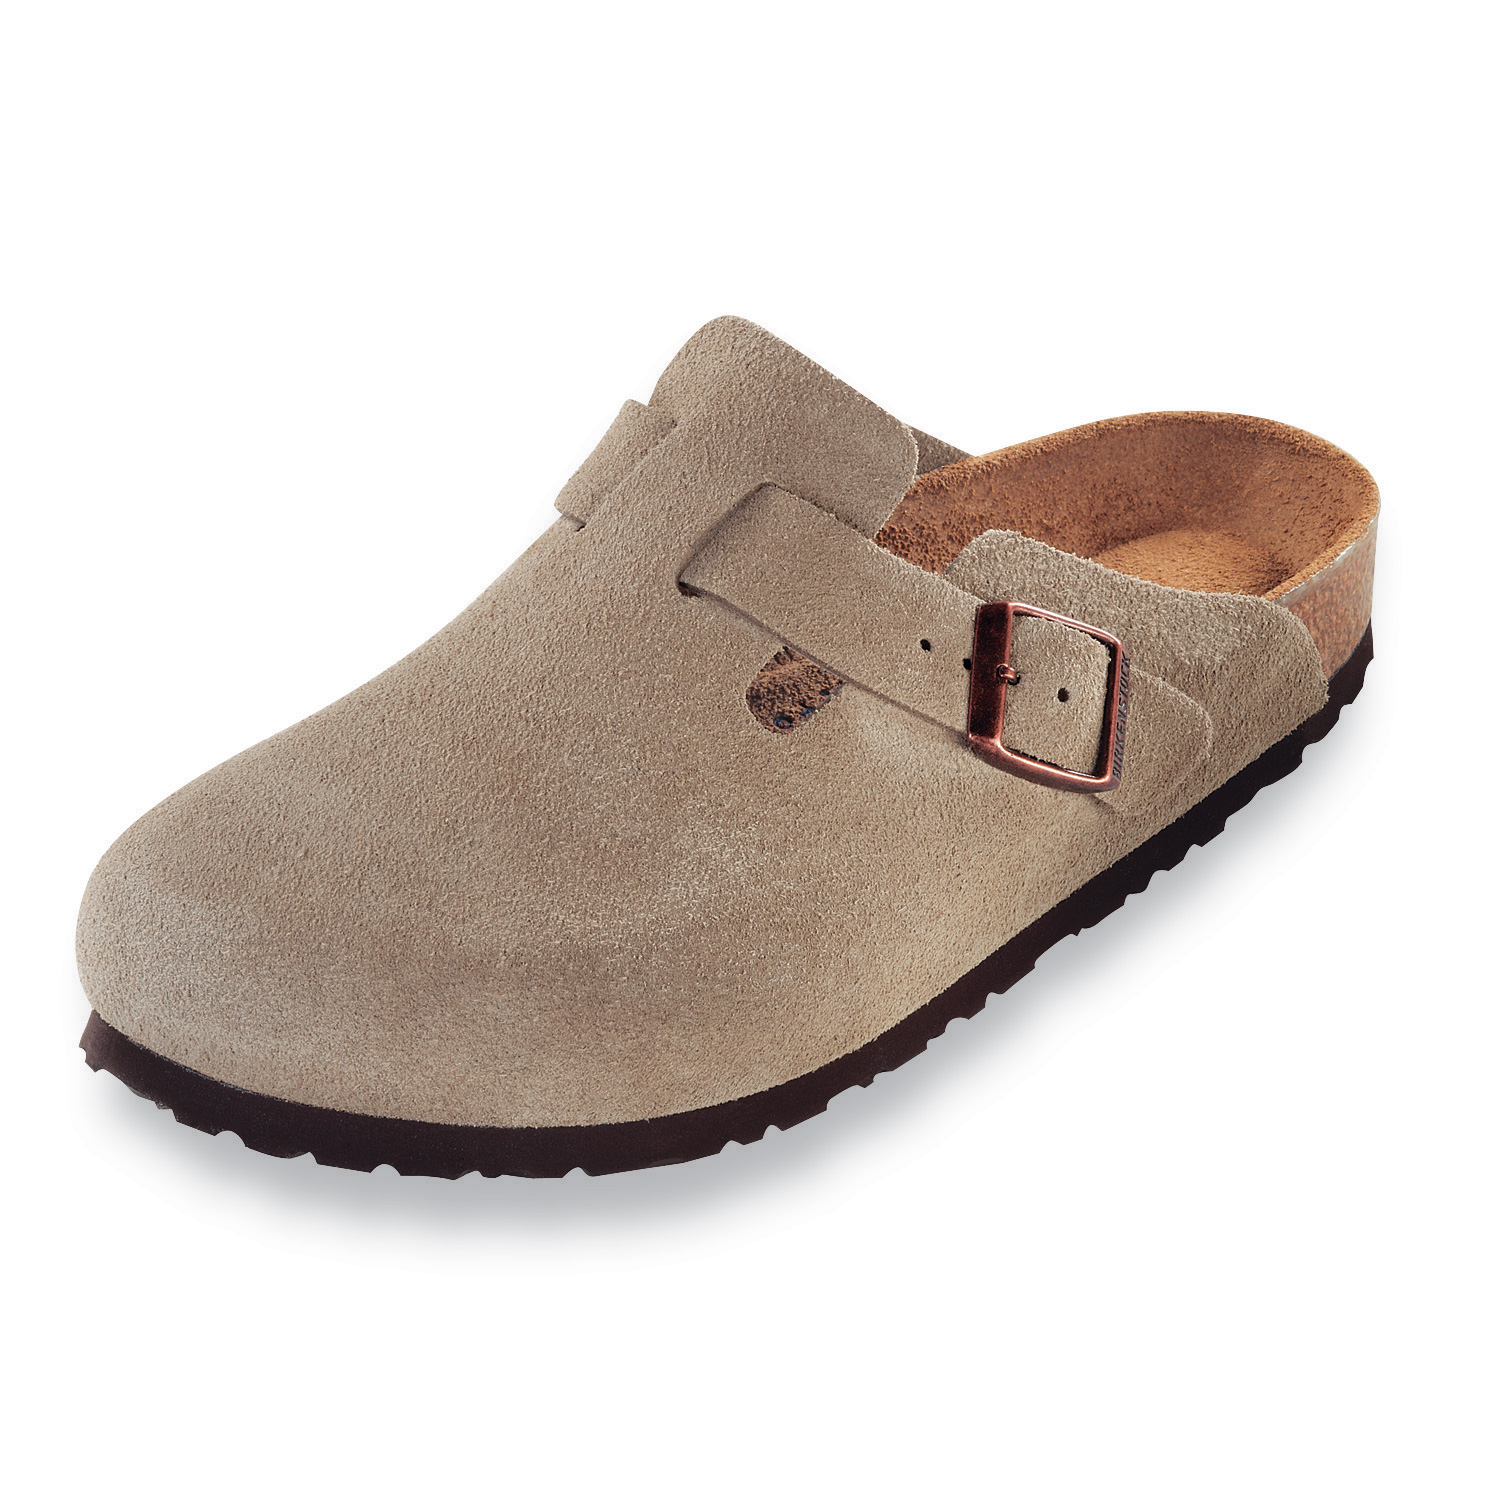 Birkenstock Boston Soft Footbed Taupe Suede 560771